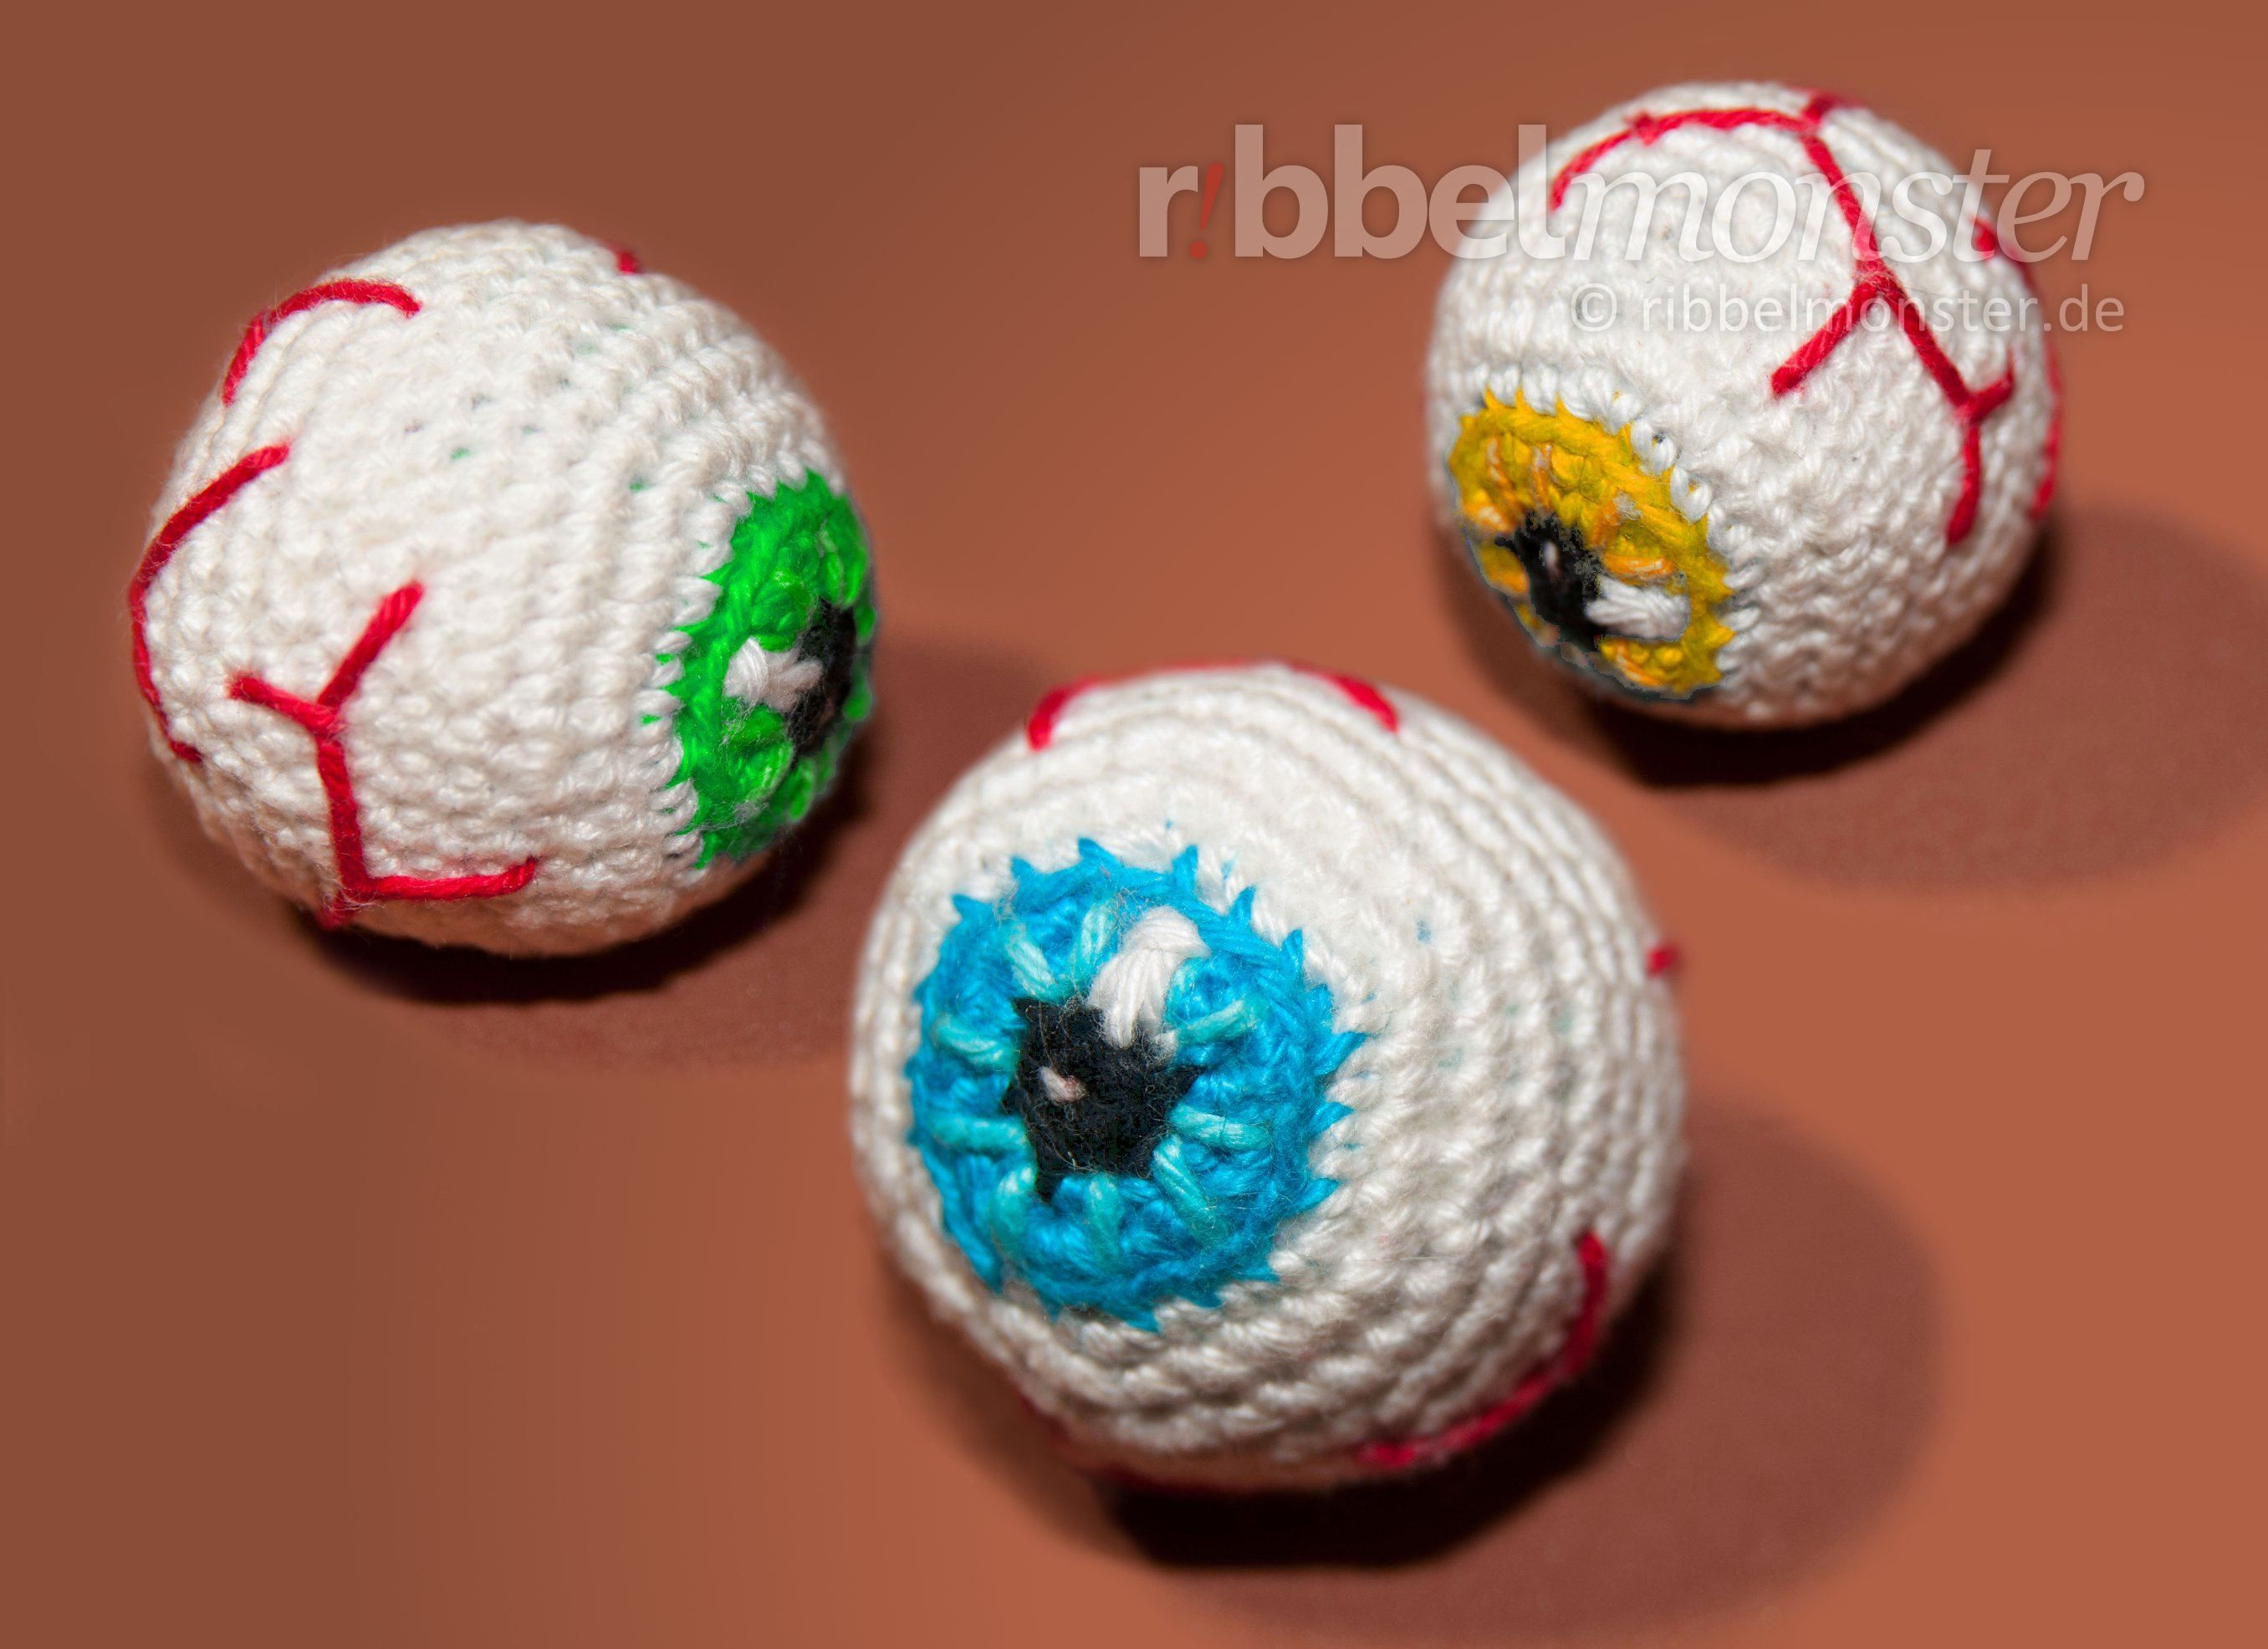 amigurumi - crochet eyball pattern - halloween crochet pattern ...